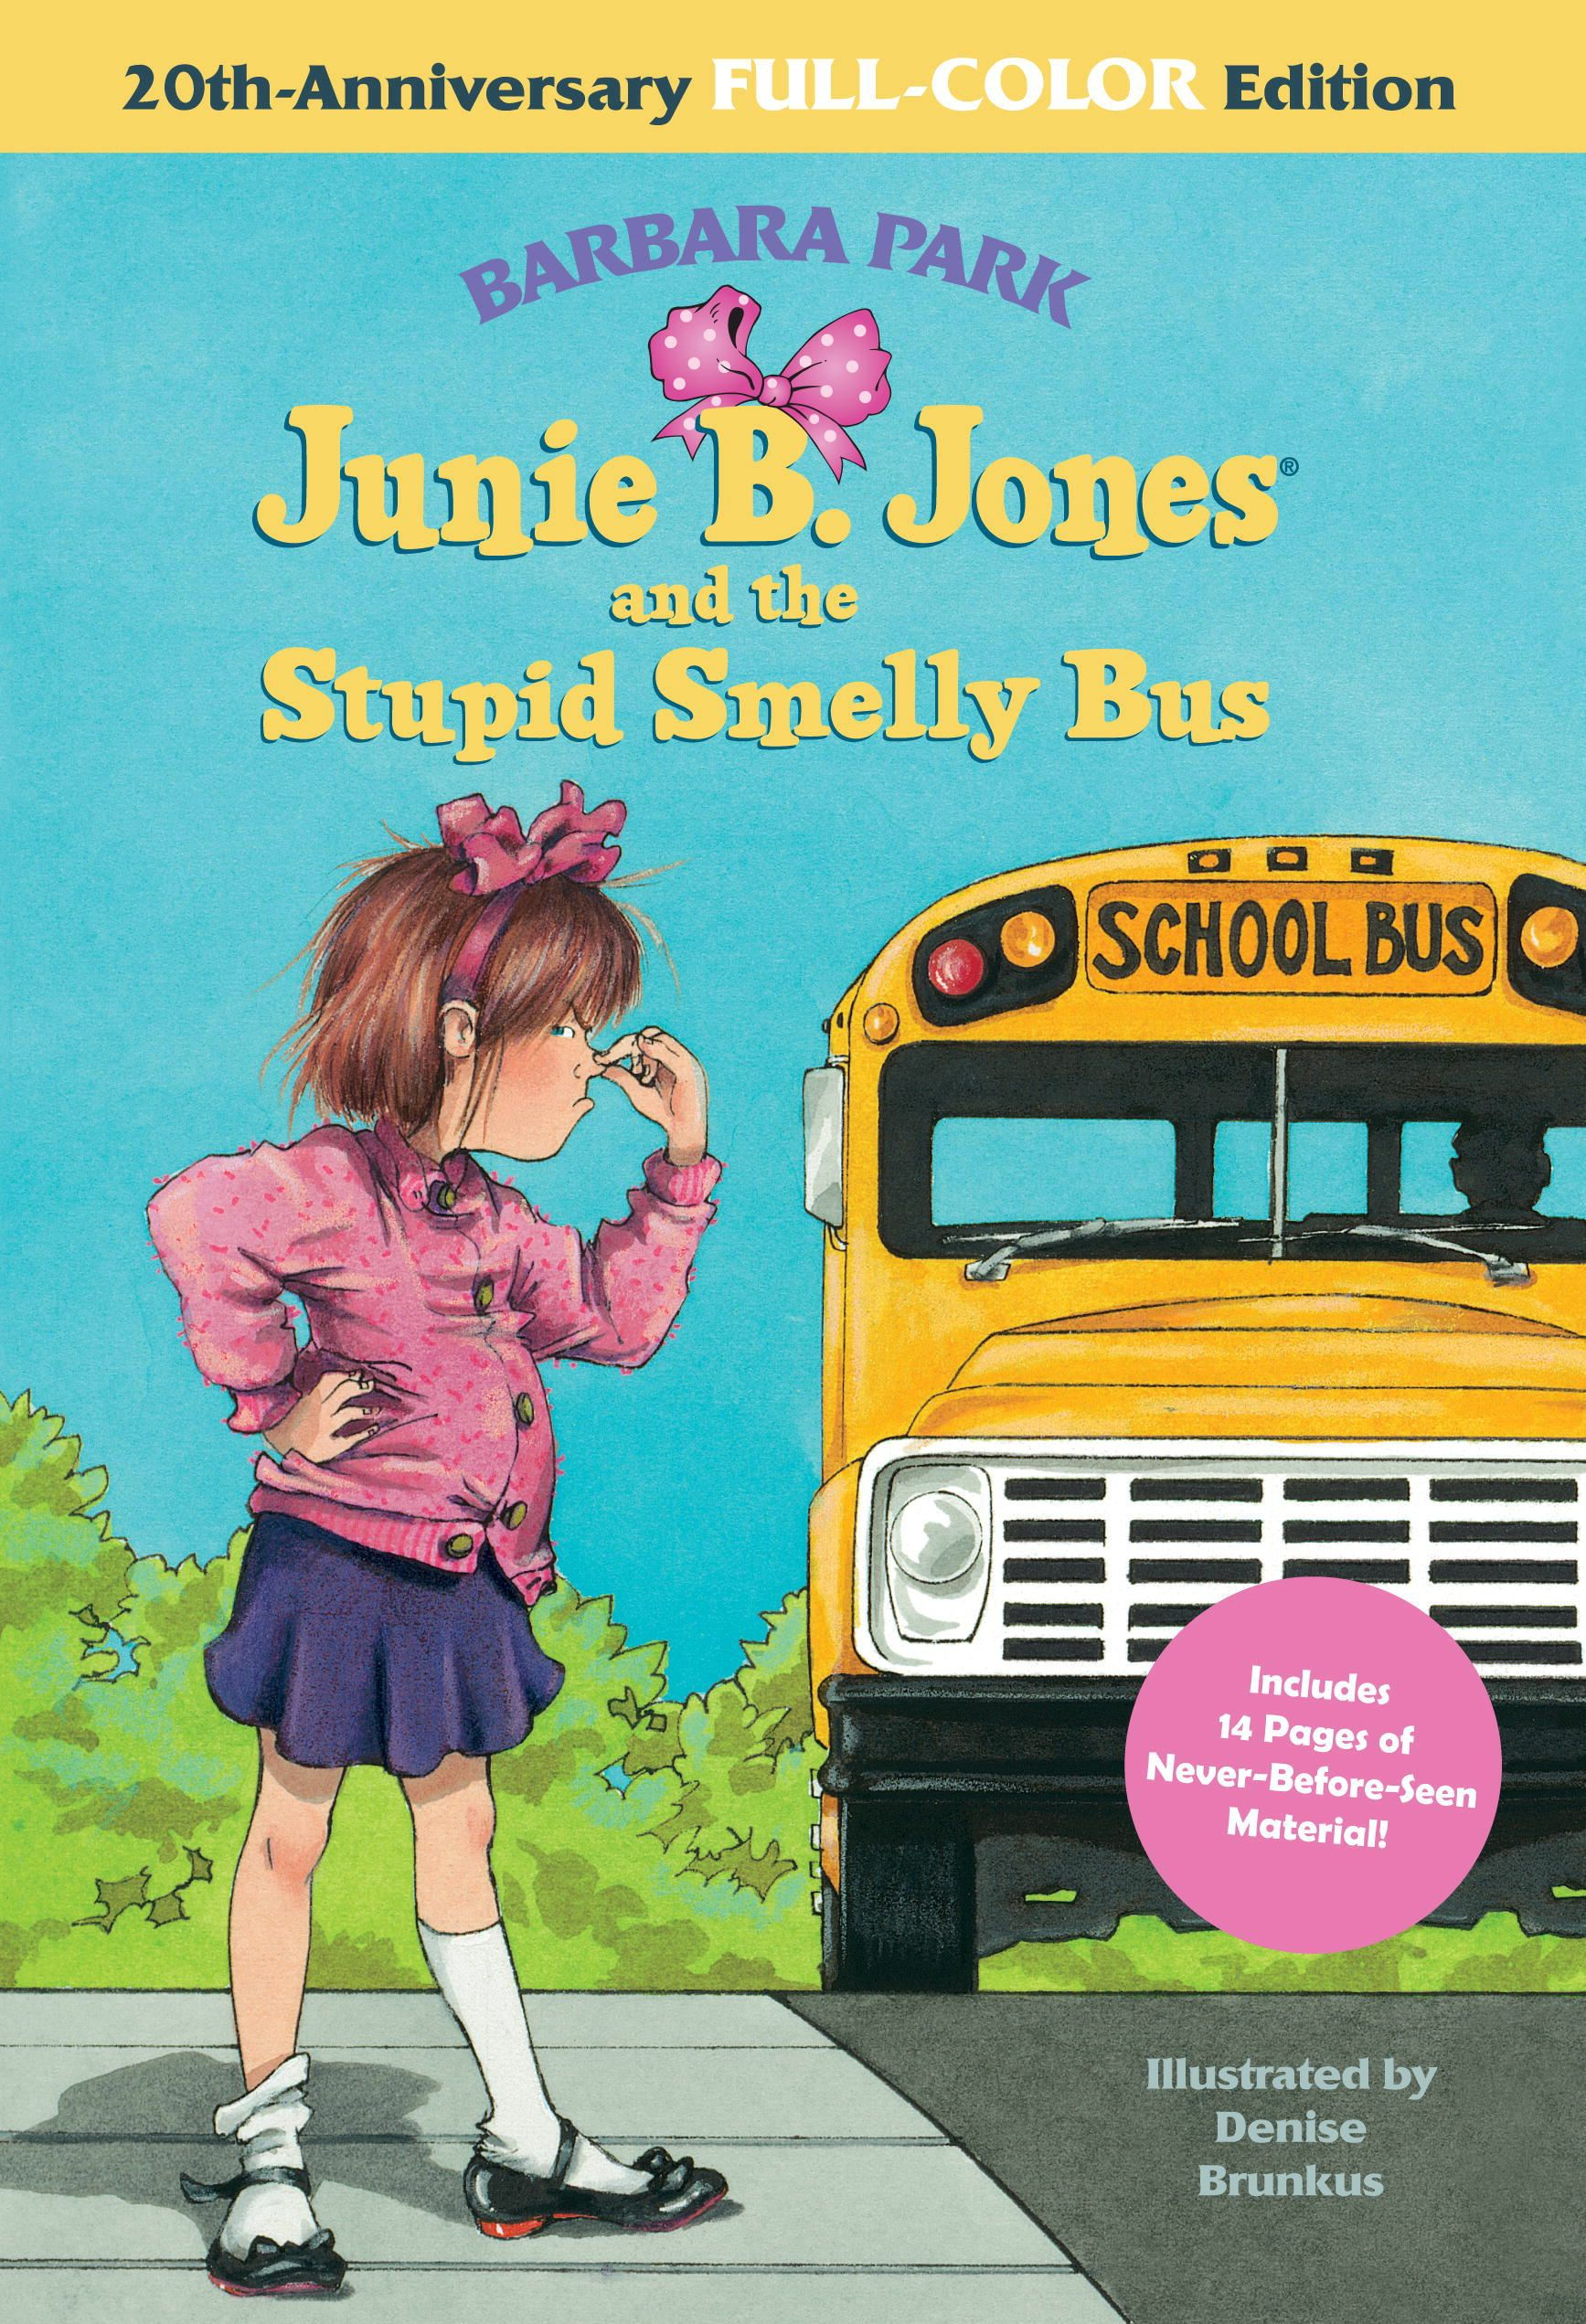 Join Junie B Jones Reading Club And Get FREE Book And